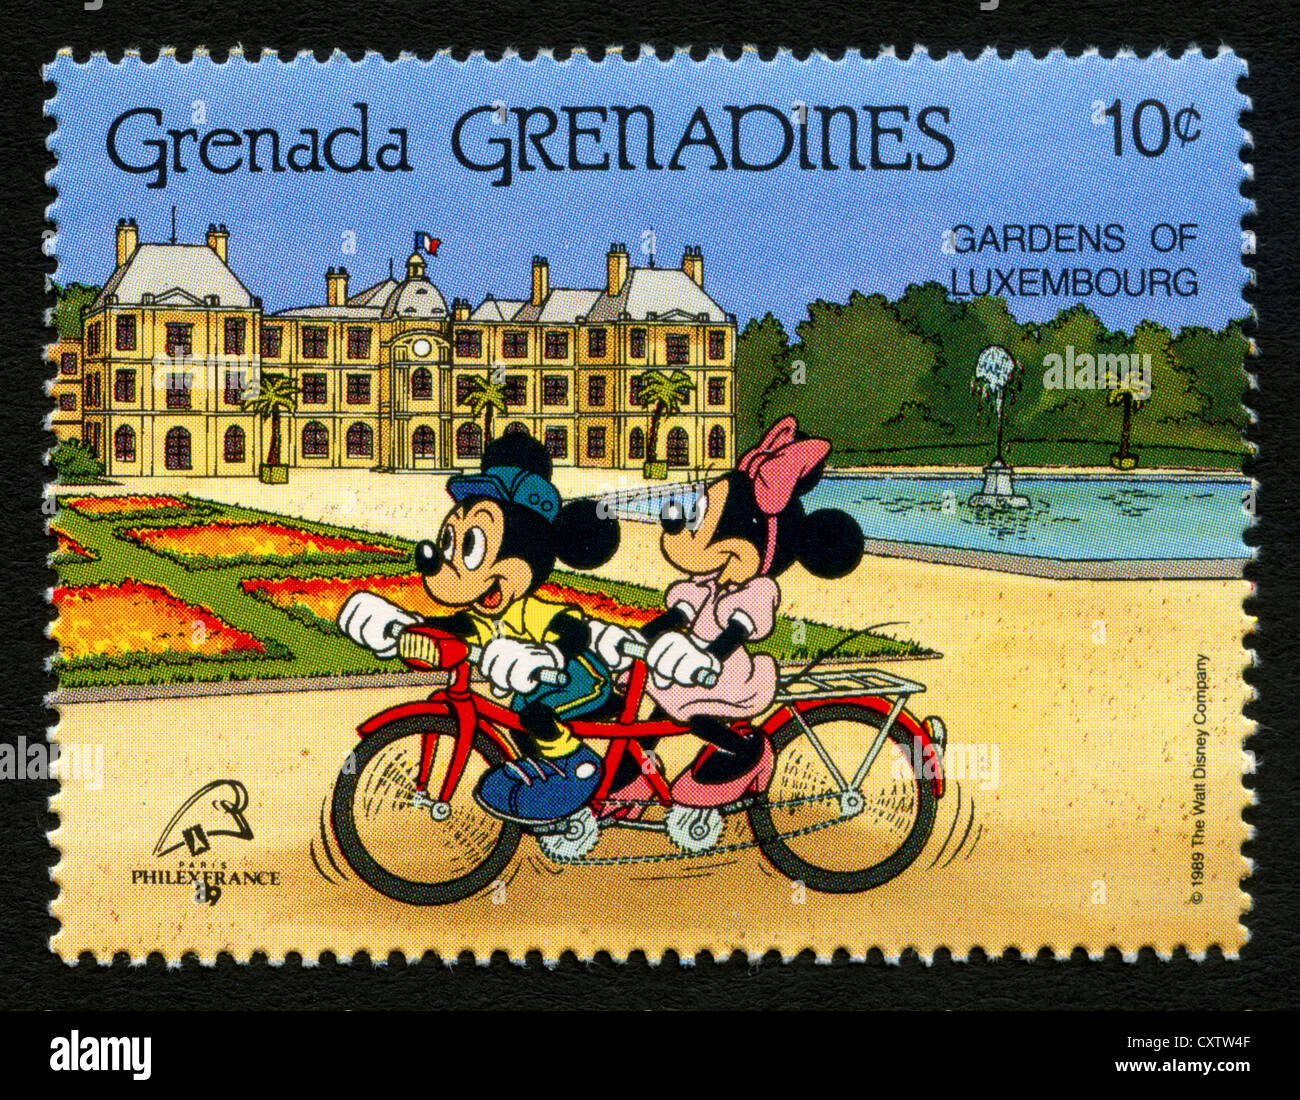 Grenada postage stamp - Disney cartoon characters - Mickey ...